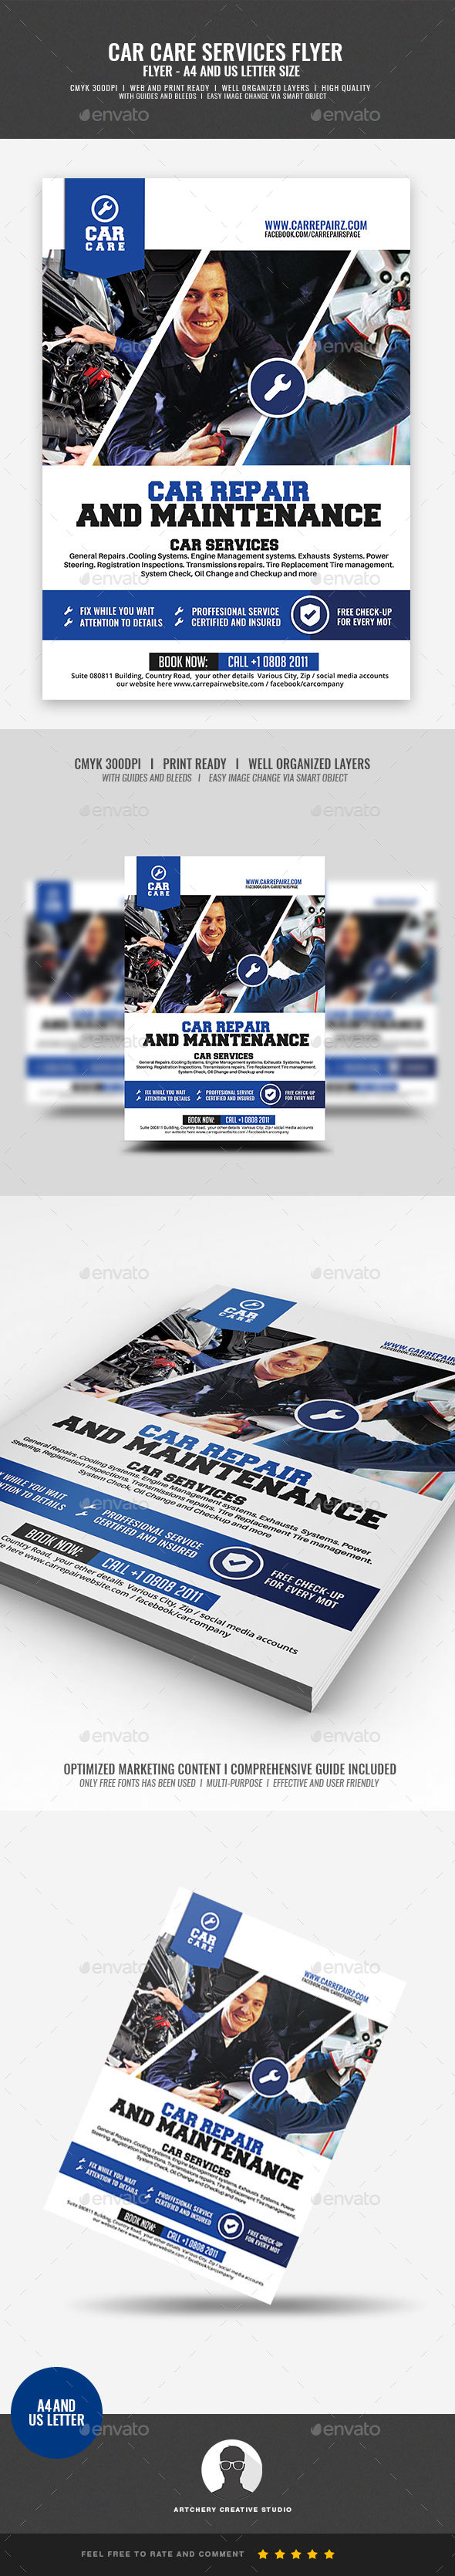 GraphicRiver Car Repair and Maintenance Flyer 21089161